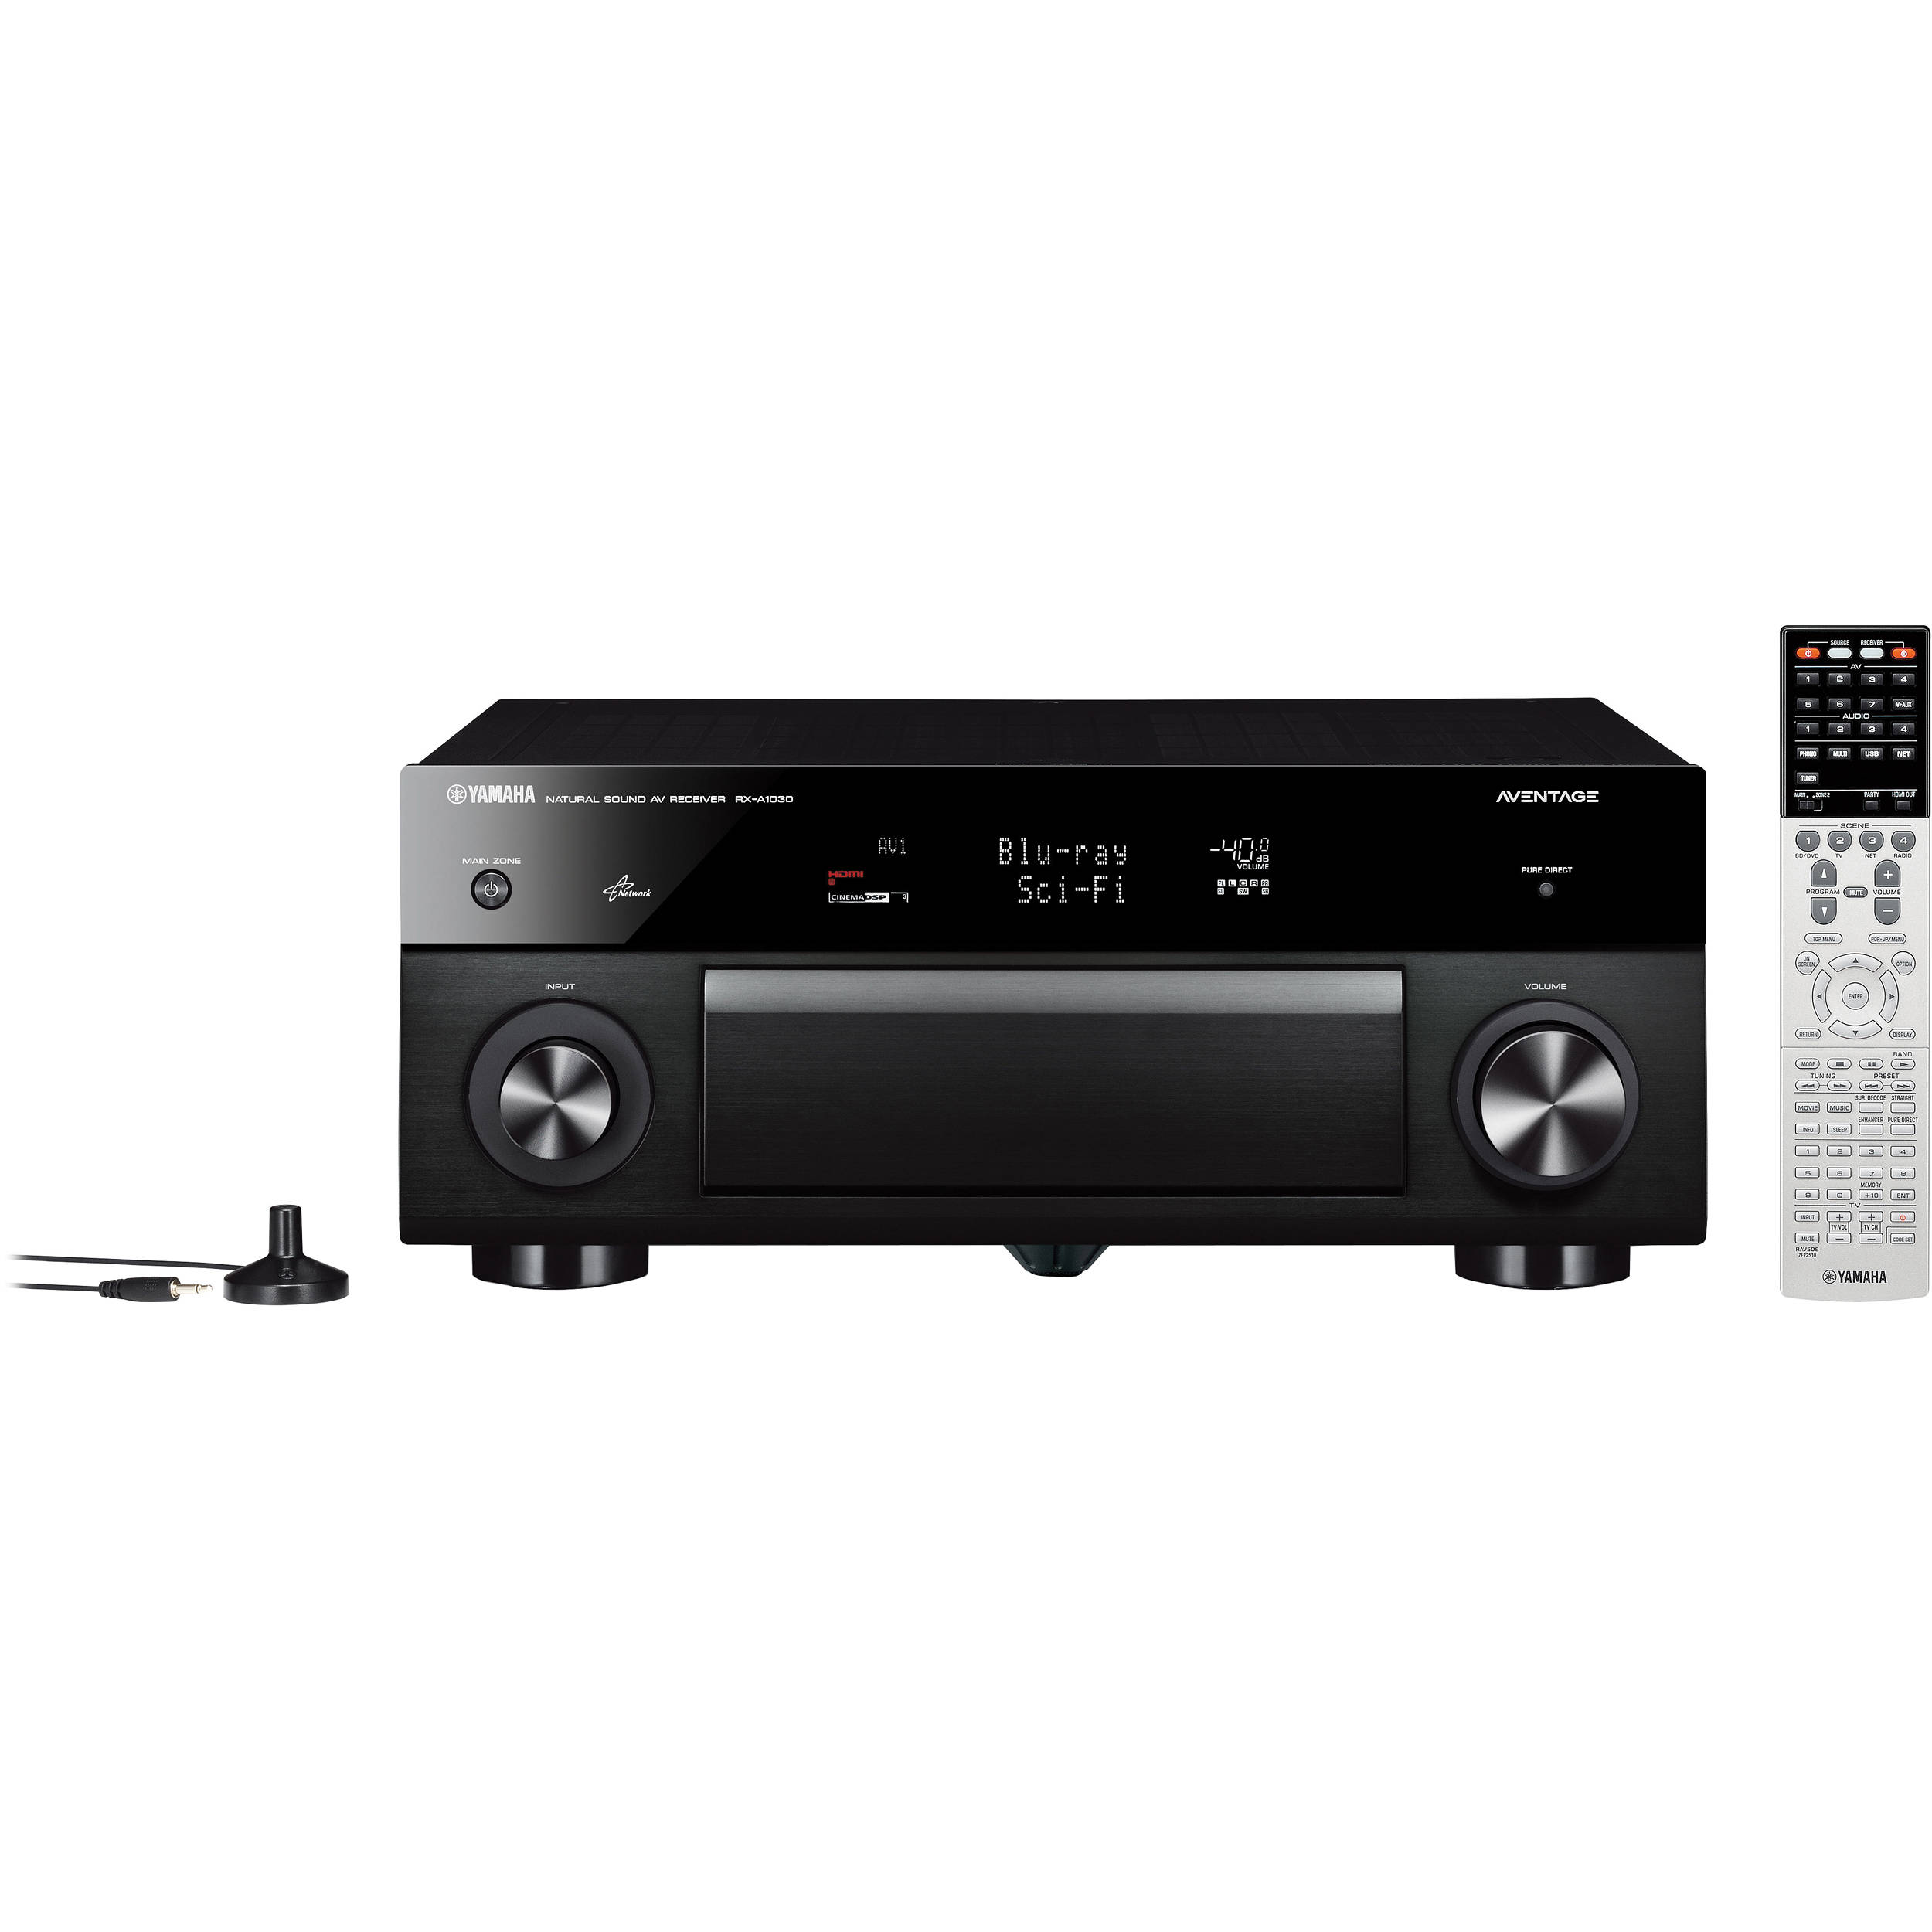 Yamaha Aventage Rx A1030 72 Channel Network Av A1030bl Bh Surround Sound Hook Up Diagram Free Download Wiring Receiver